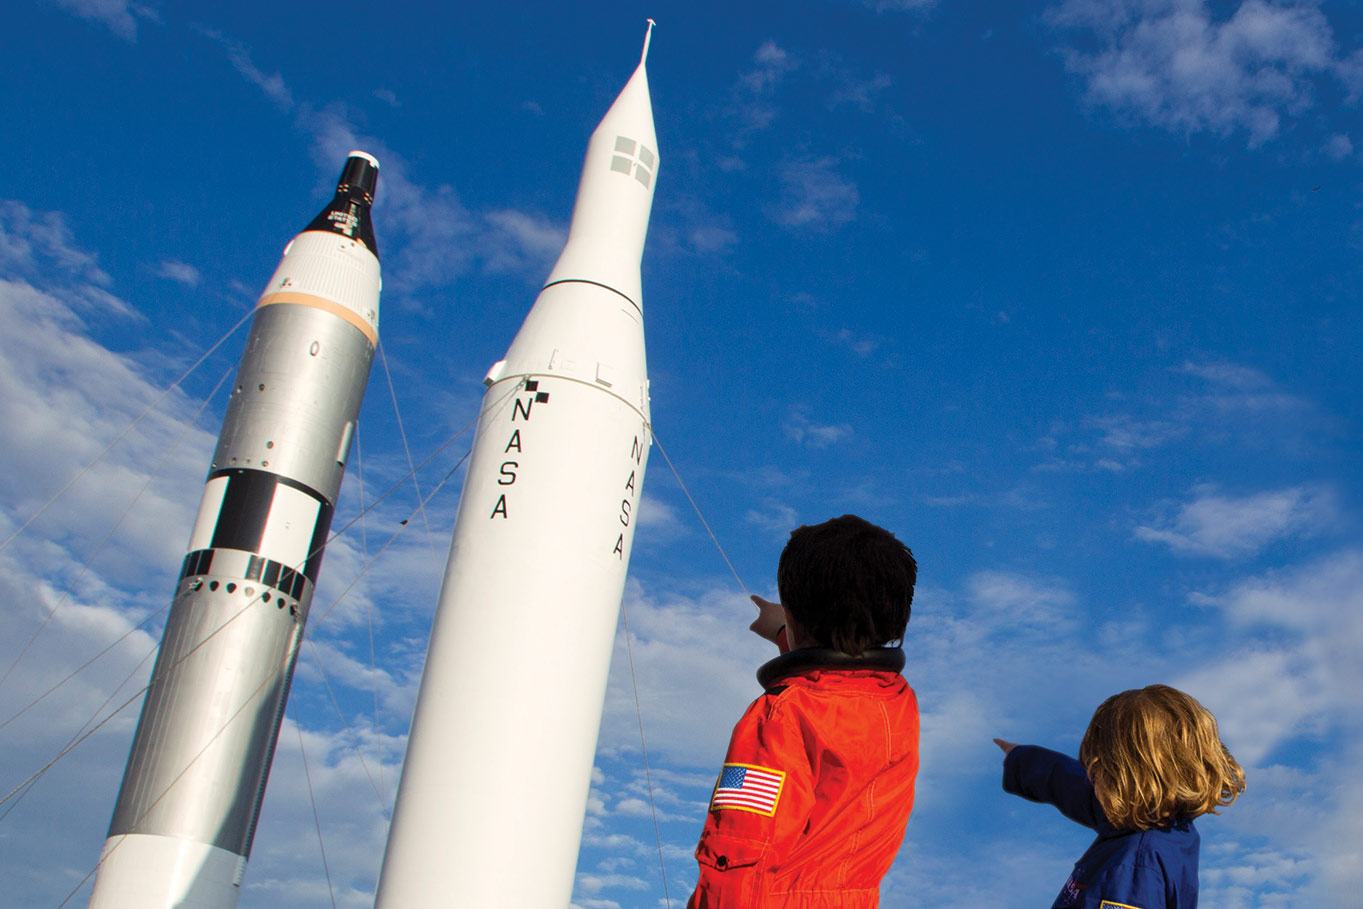 Dreamup Launches Learning into Orbit